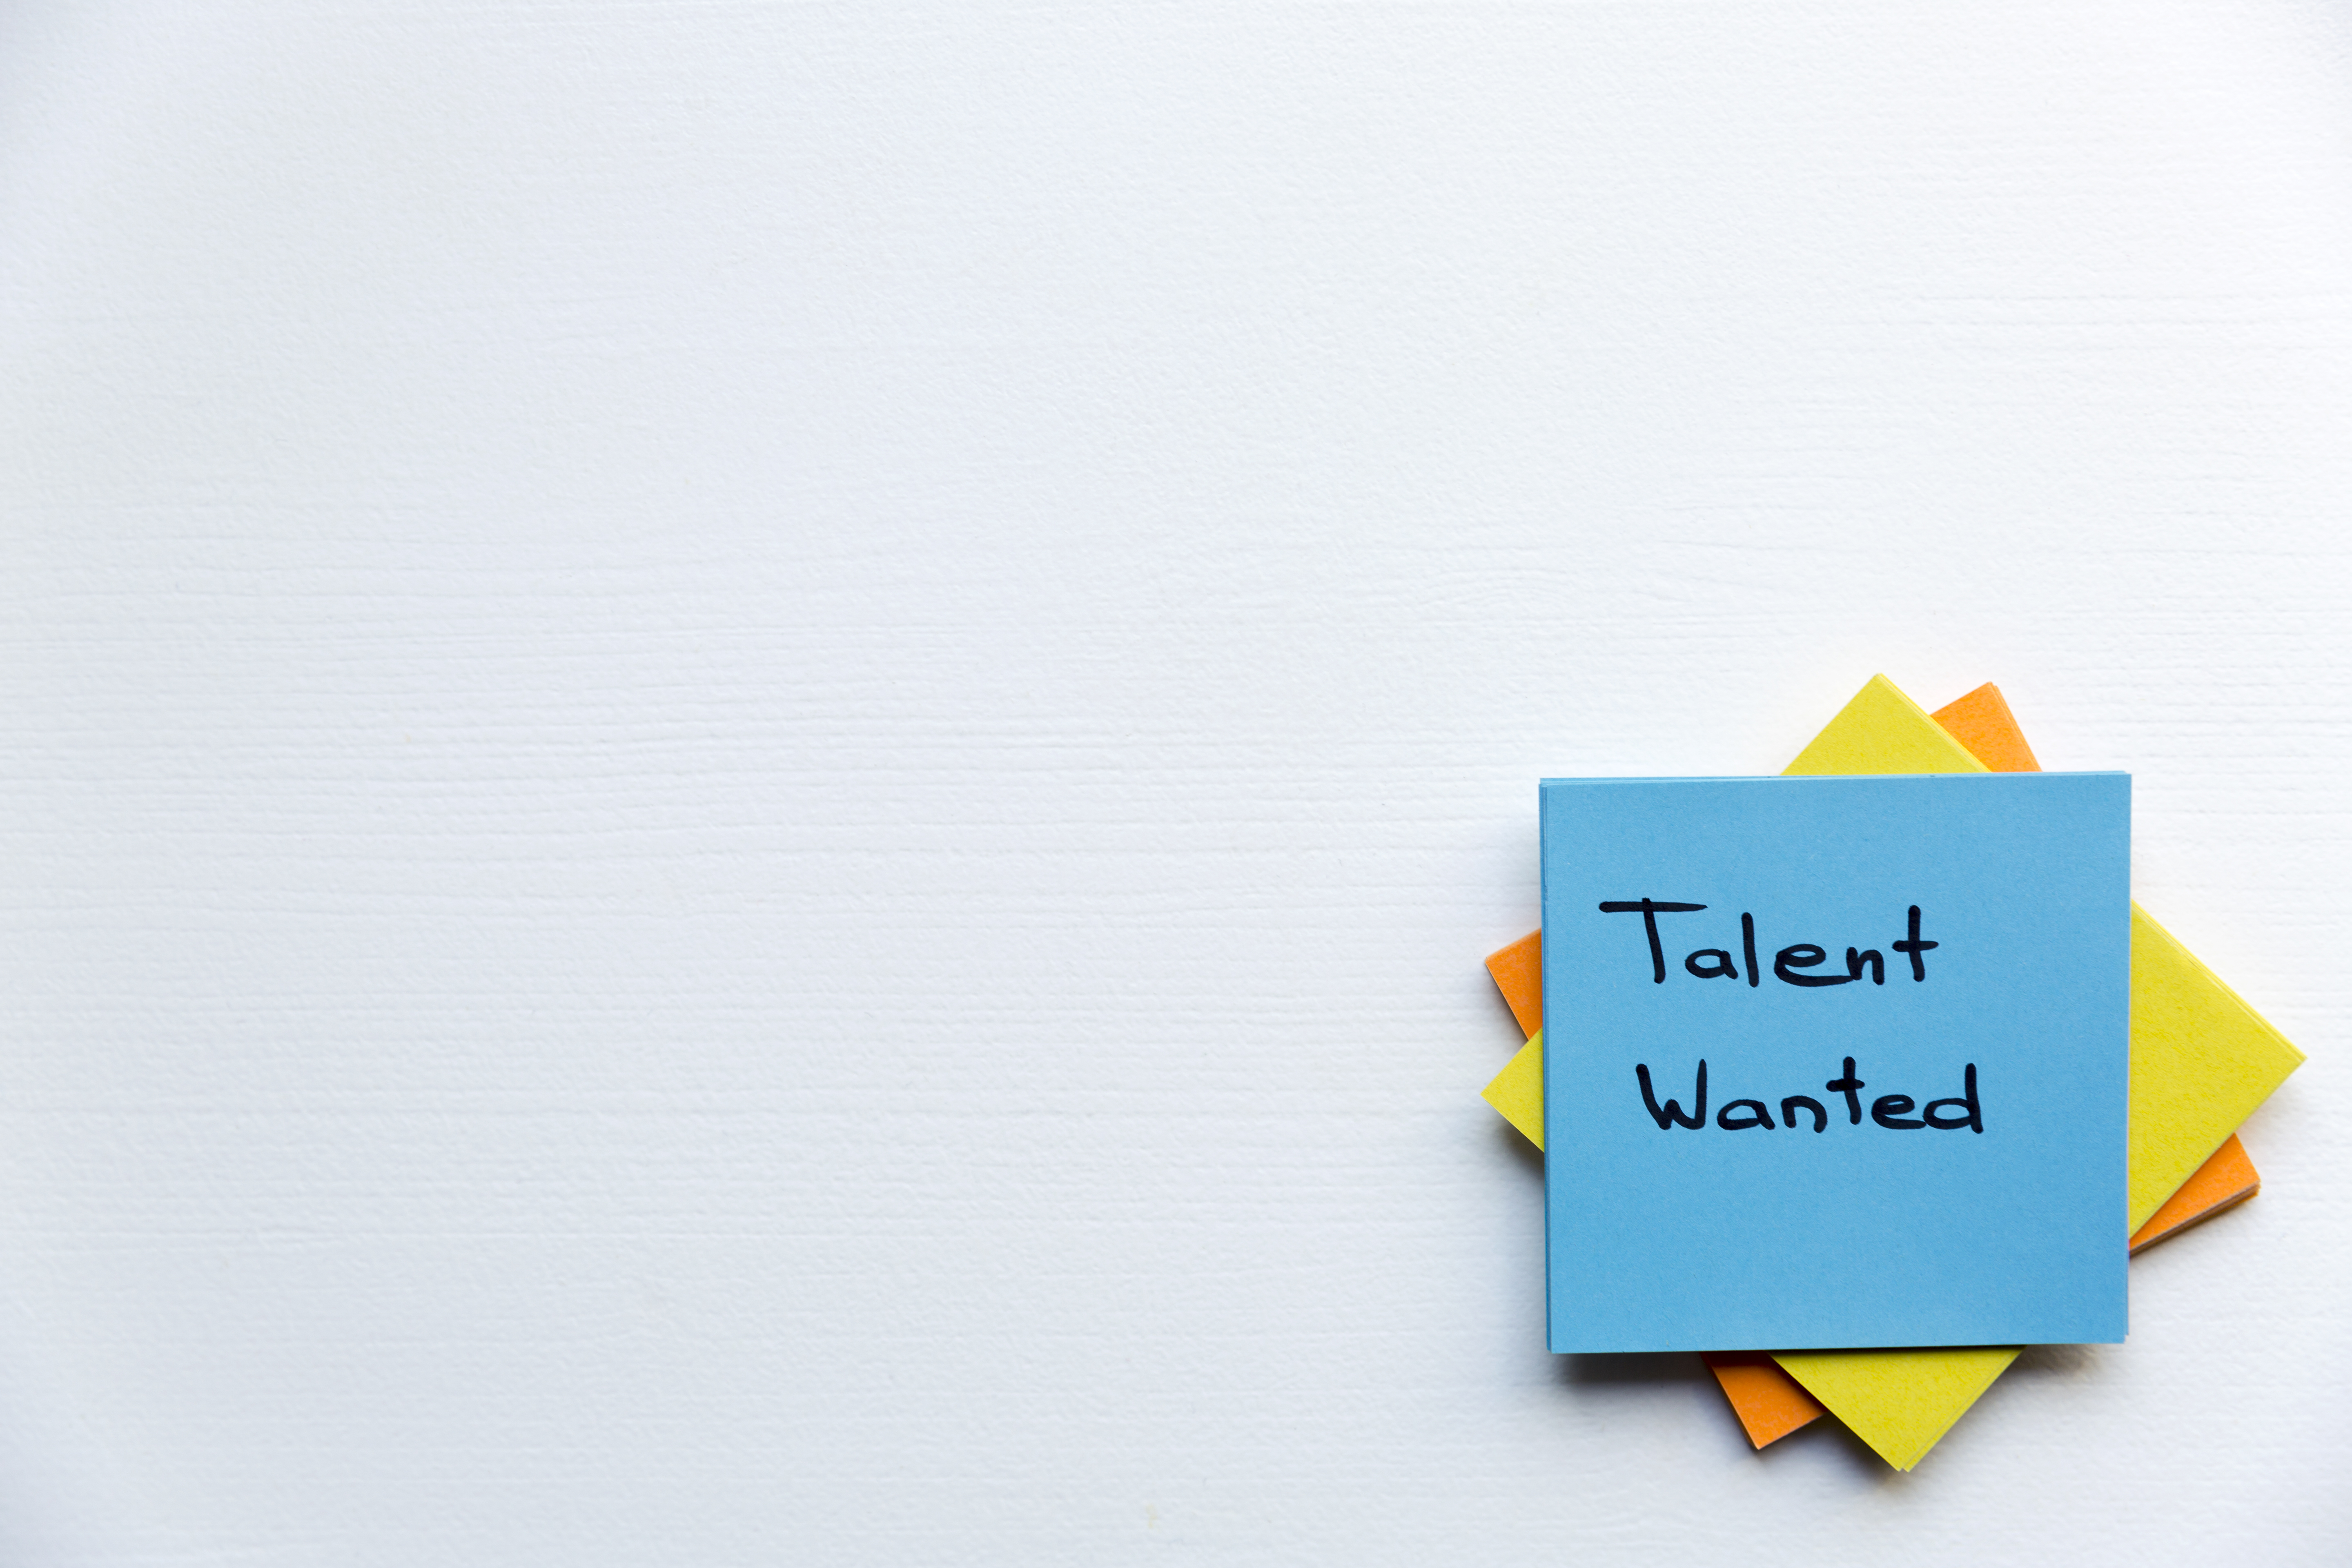 Five tactics to help small businesses compete in the talent market